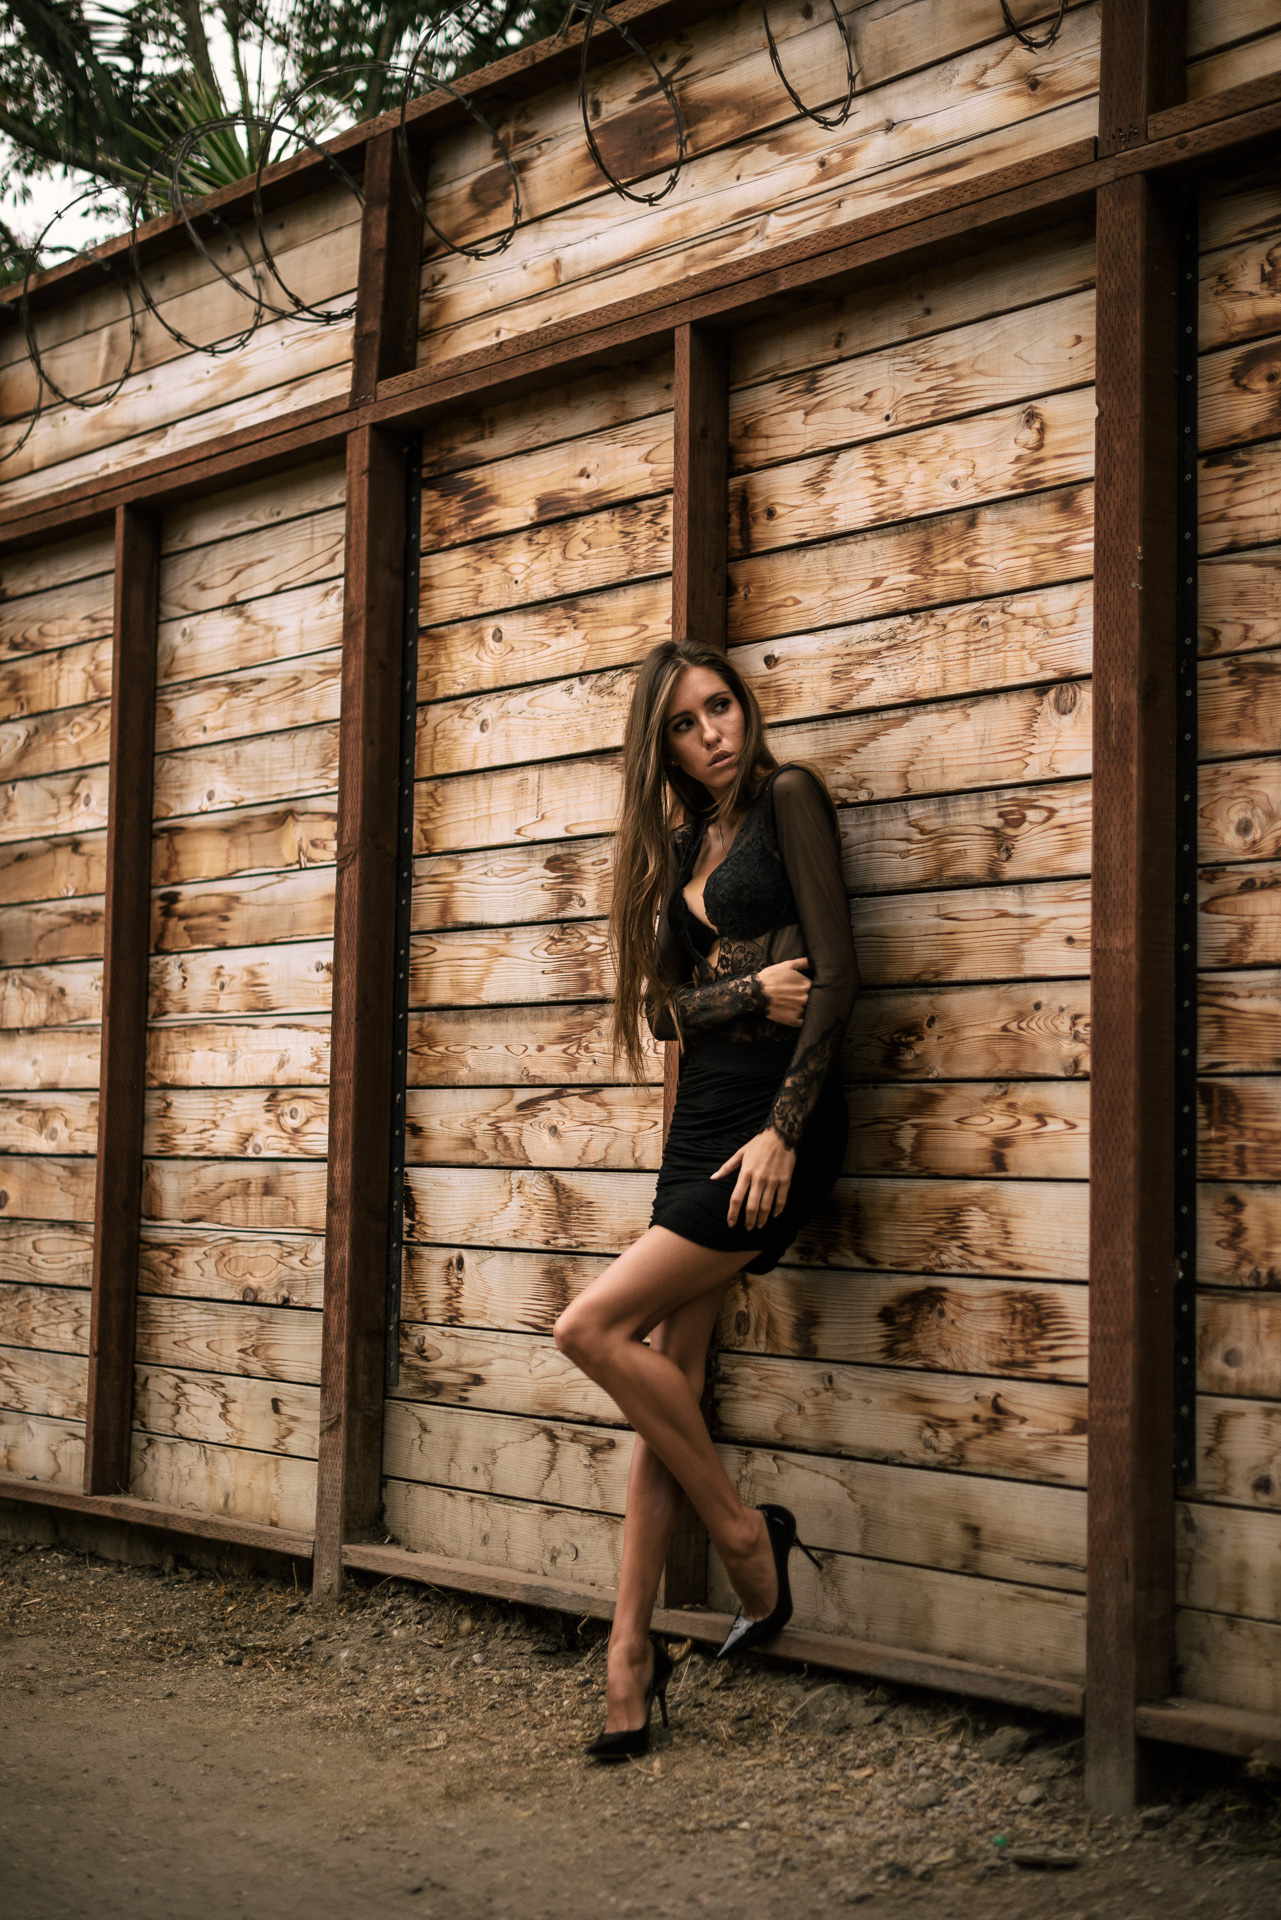 model poses in front of wooden wall with barbed wire at The Hungarion Brunette Lingerie as outerwear fashion photoshoot in Venice Beach California